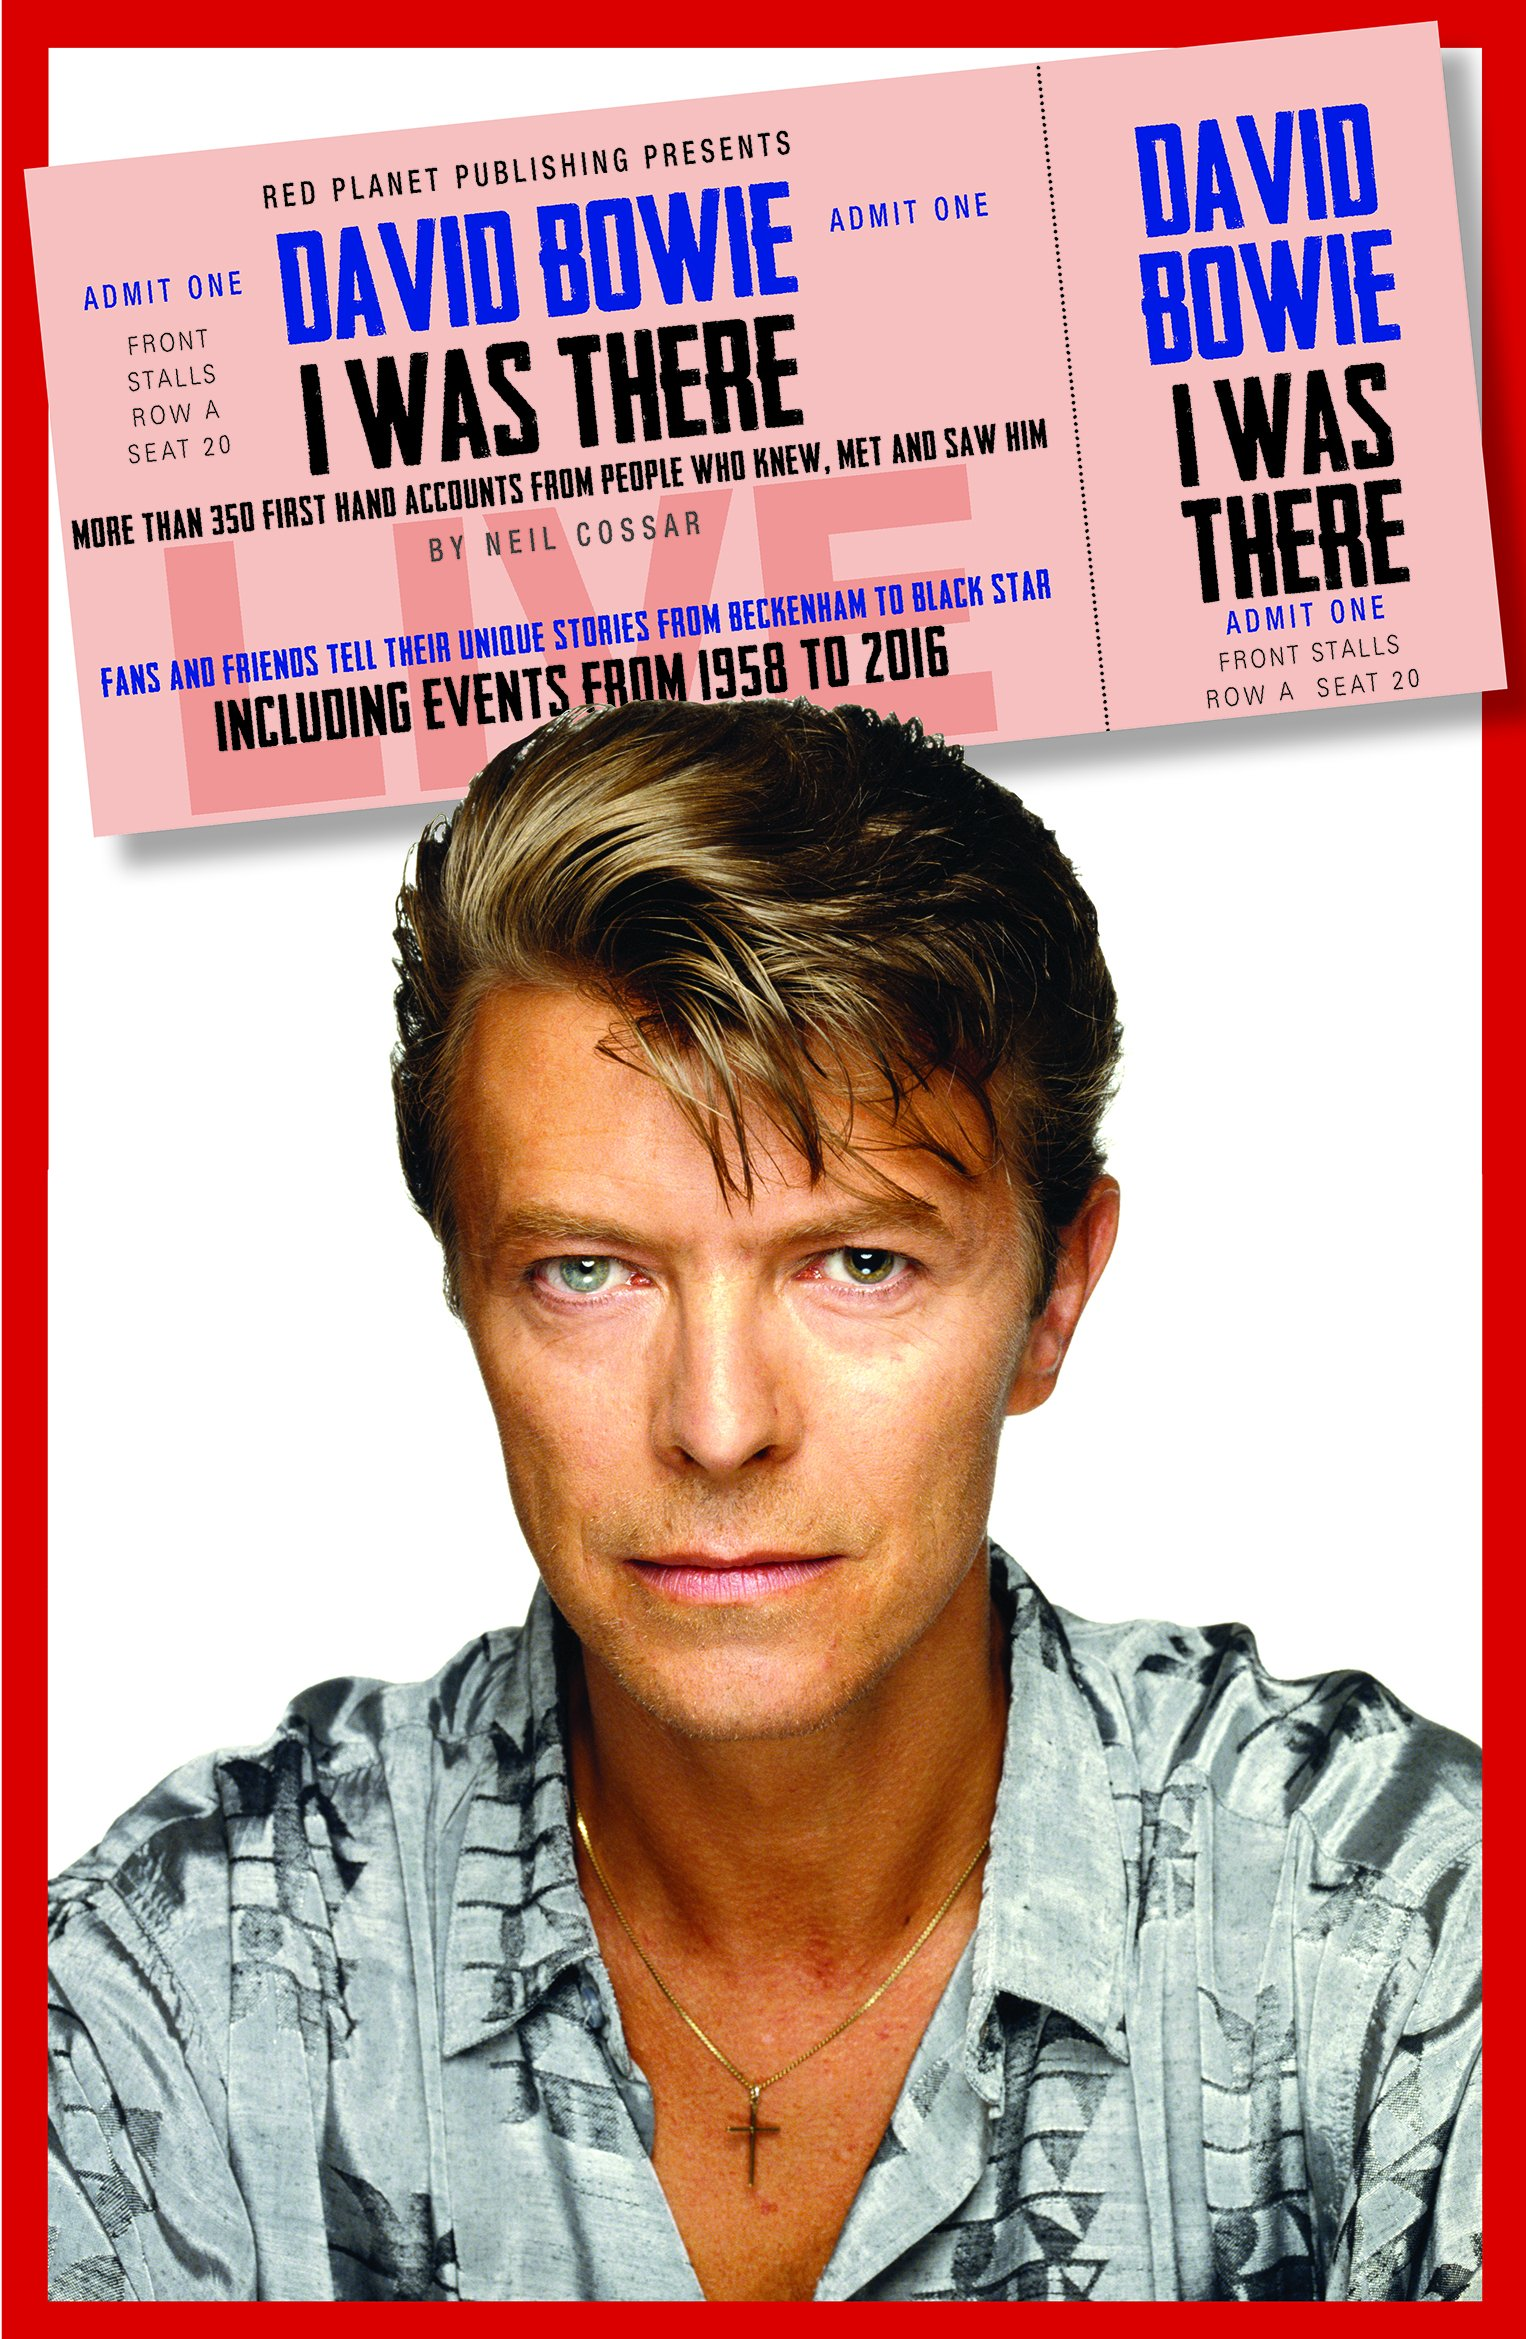 David Bowie I was There: More than 350 first-hand accounts from